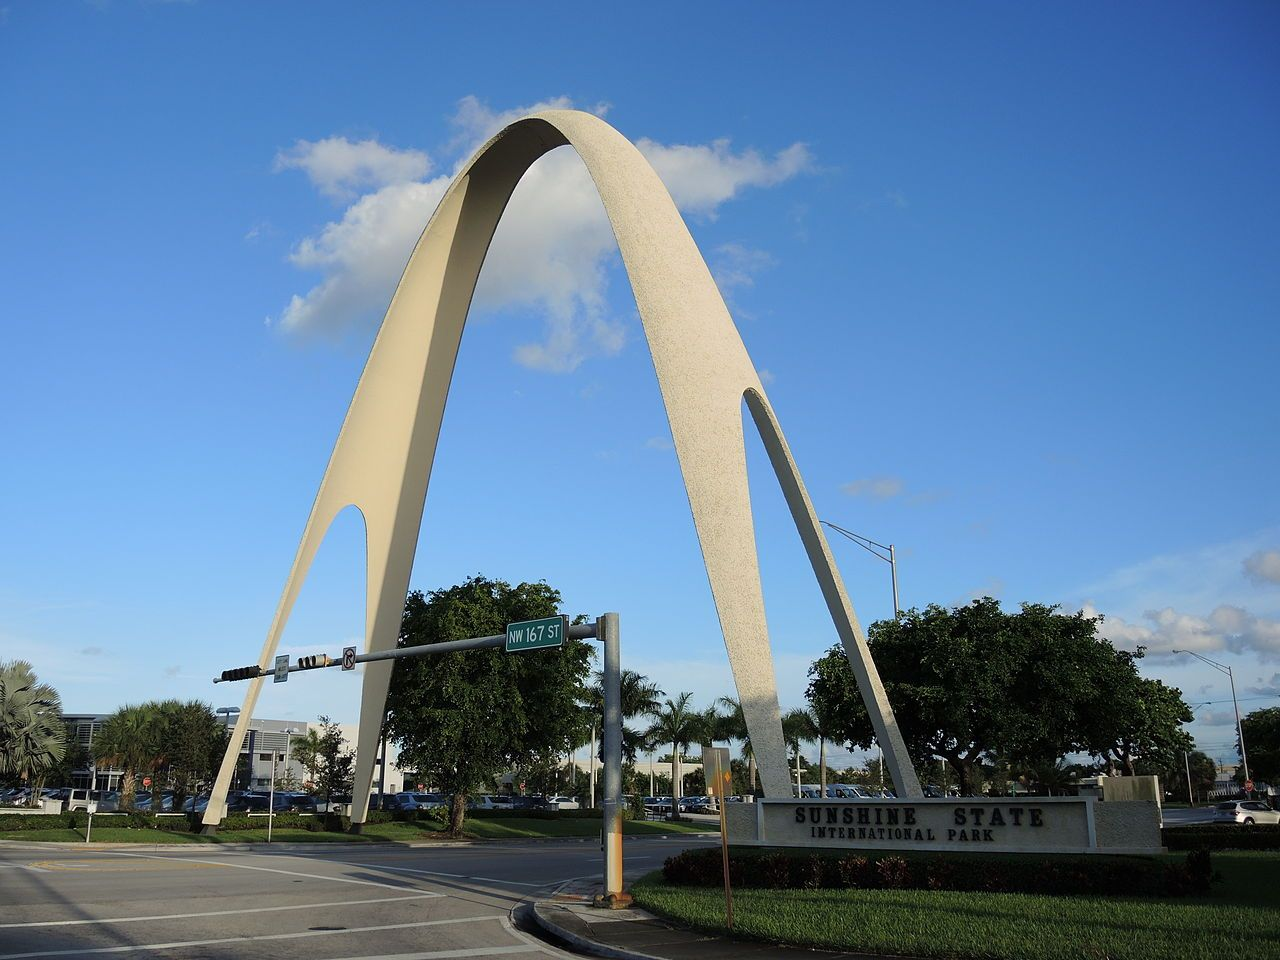 Sunshine State Arch in MiamiDade County, Florida